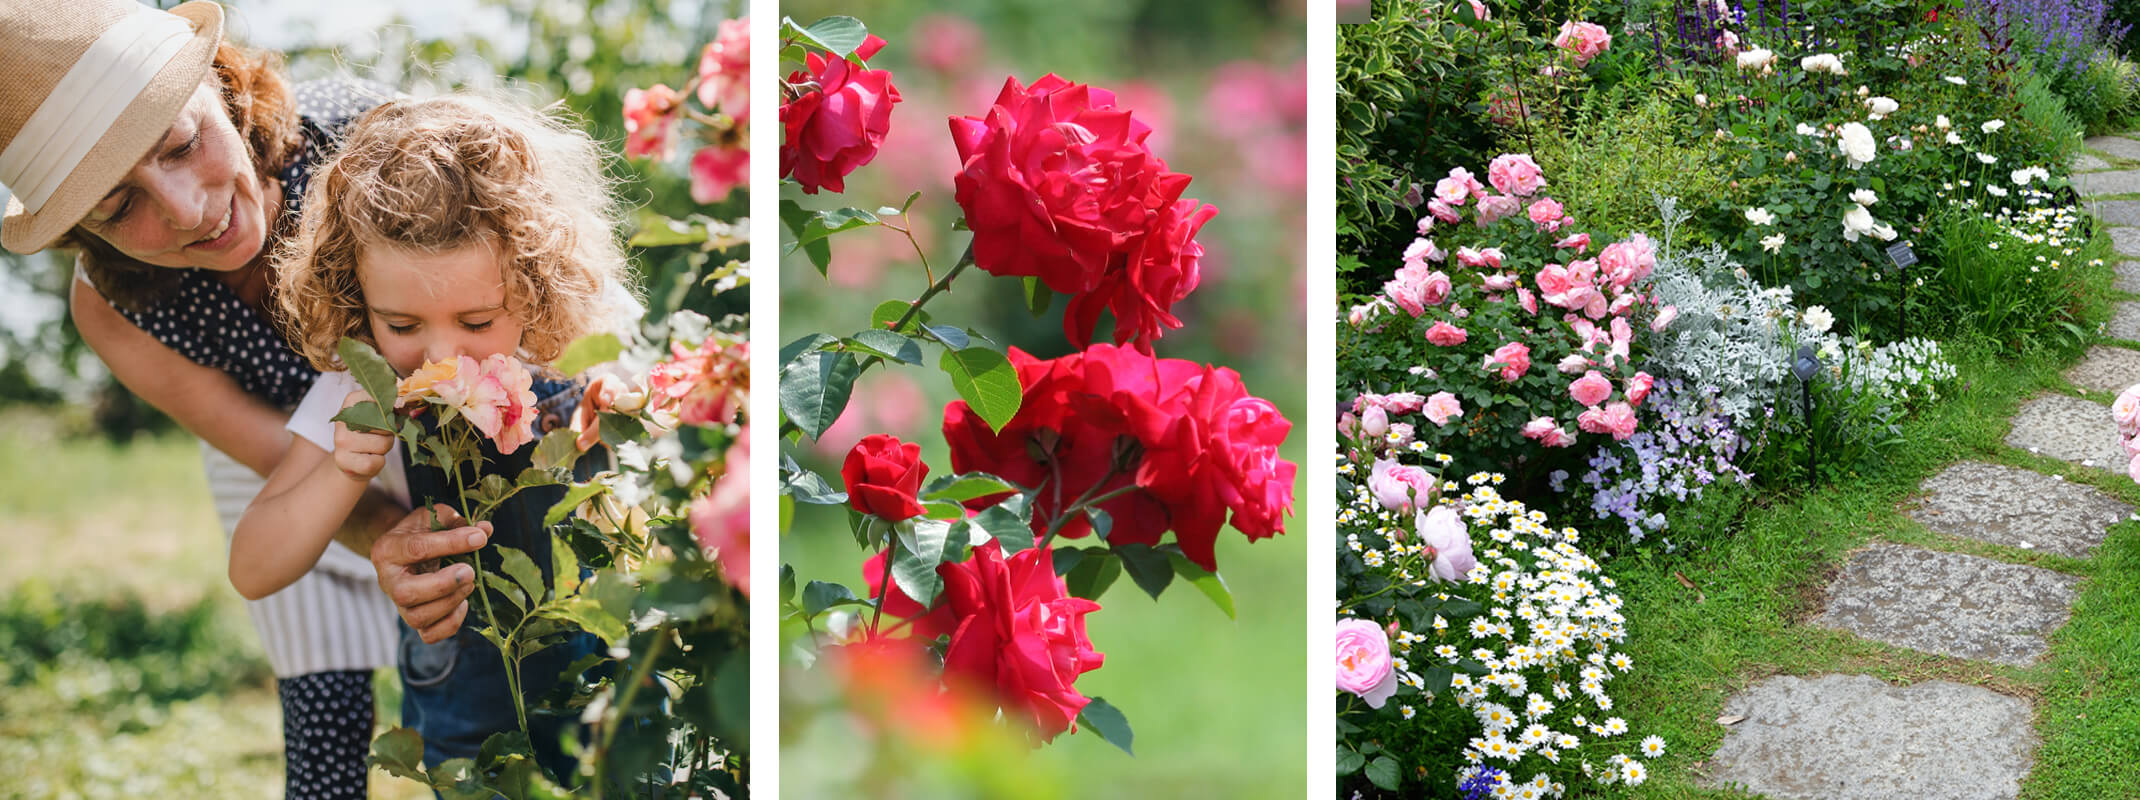 3 images with the first being a mother and her daughter smelling roses and the second red roses growing in the garden and then the third image roses in a garden mixed with other flower and a path running down the middle